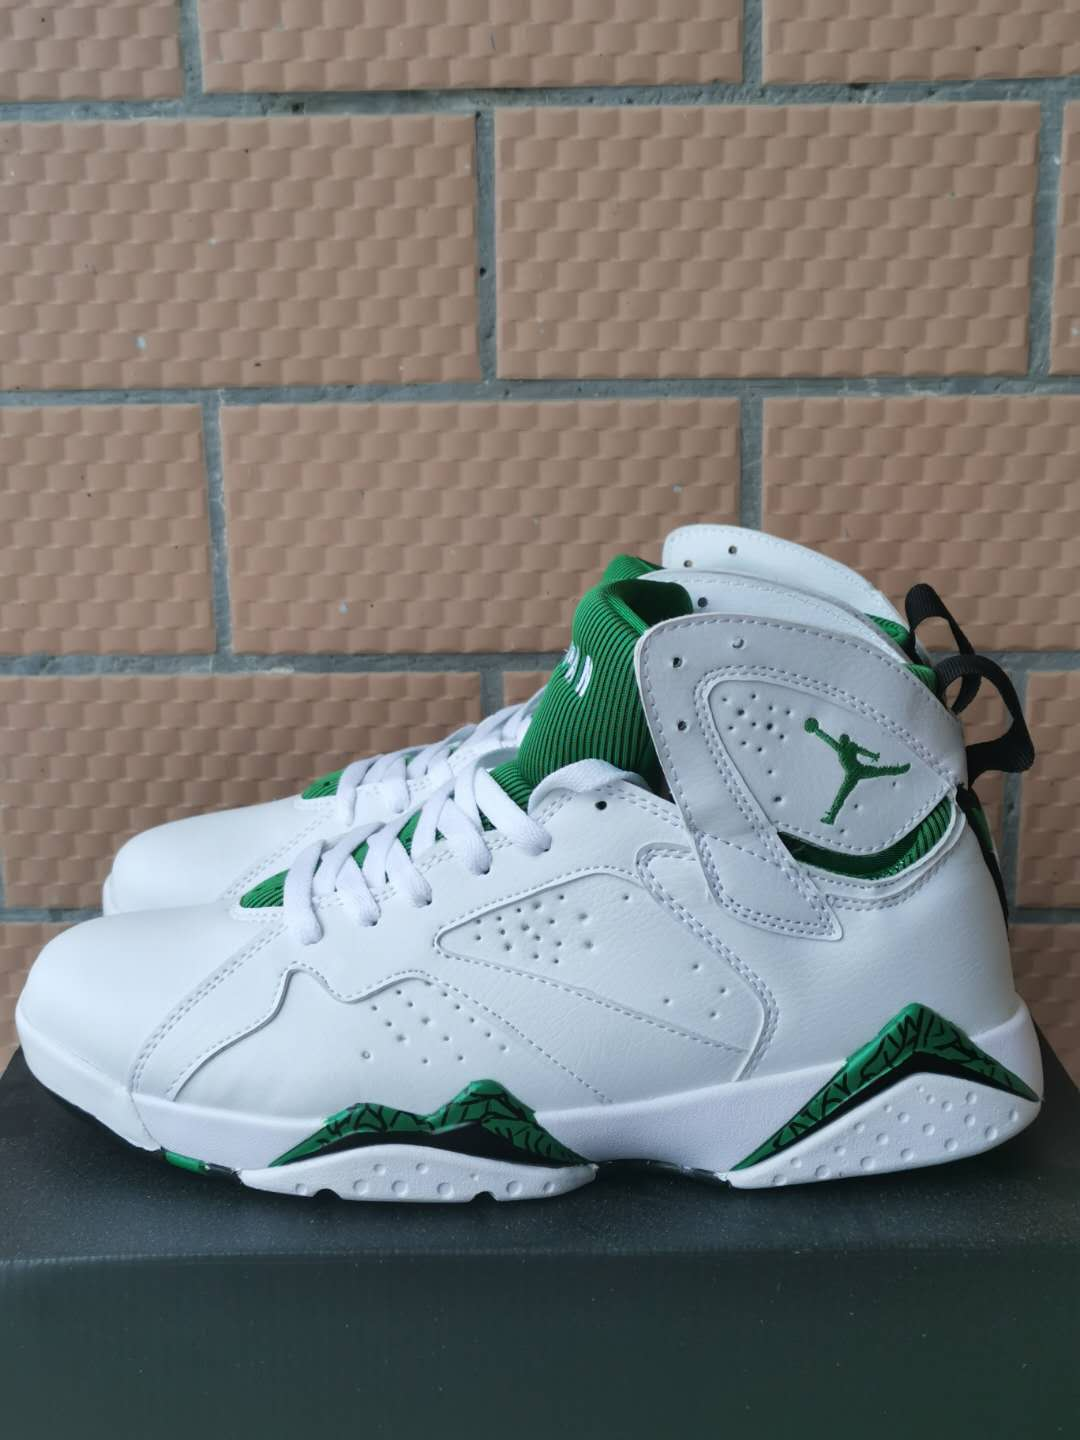 2002 Air Jordan 7 Retro White Green Shoes